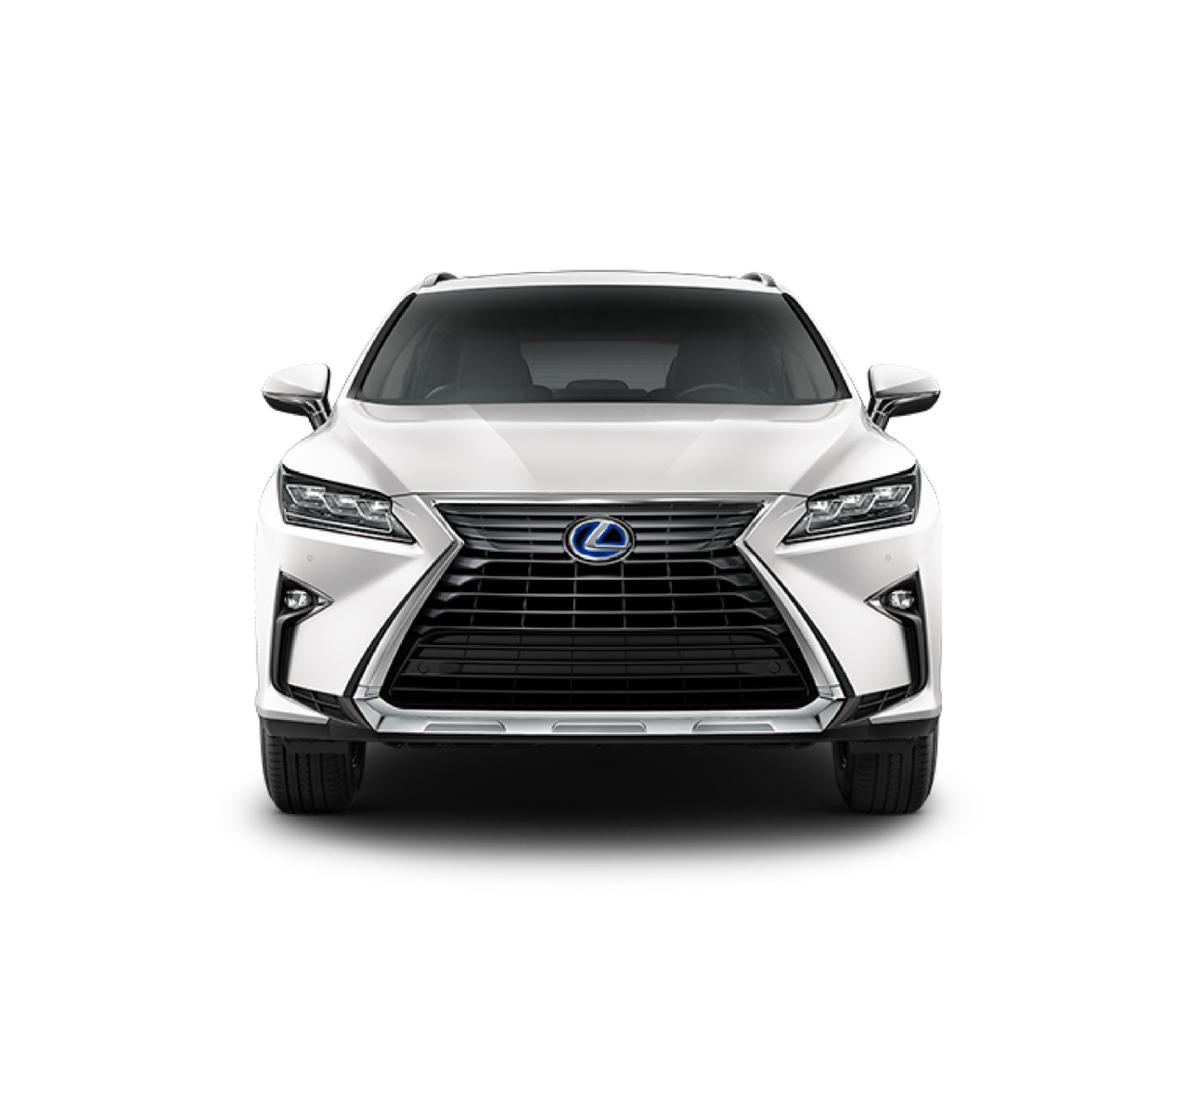 hight resolution of 2019 lexus rx 450hl vehicle photo in colorado springs co 80905